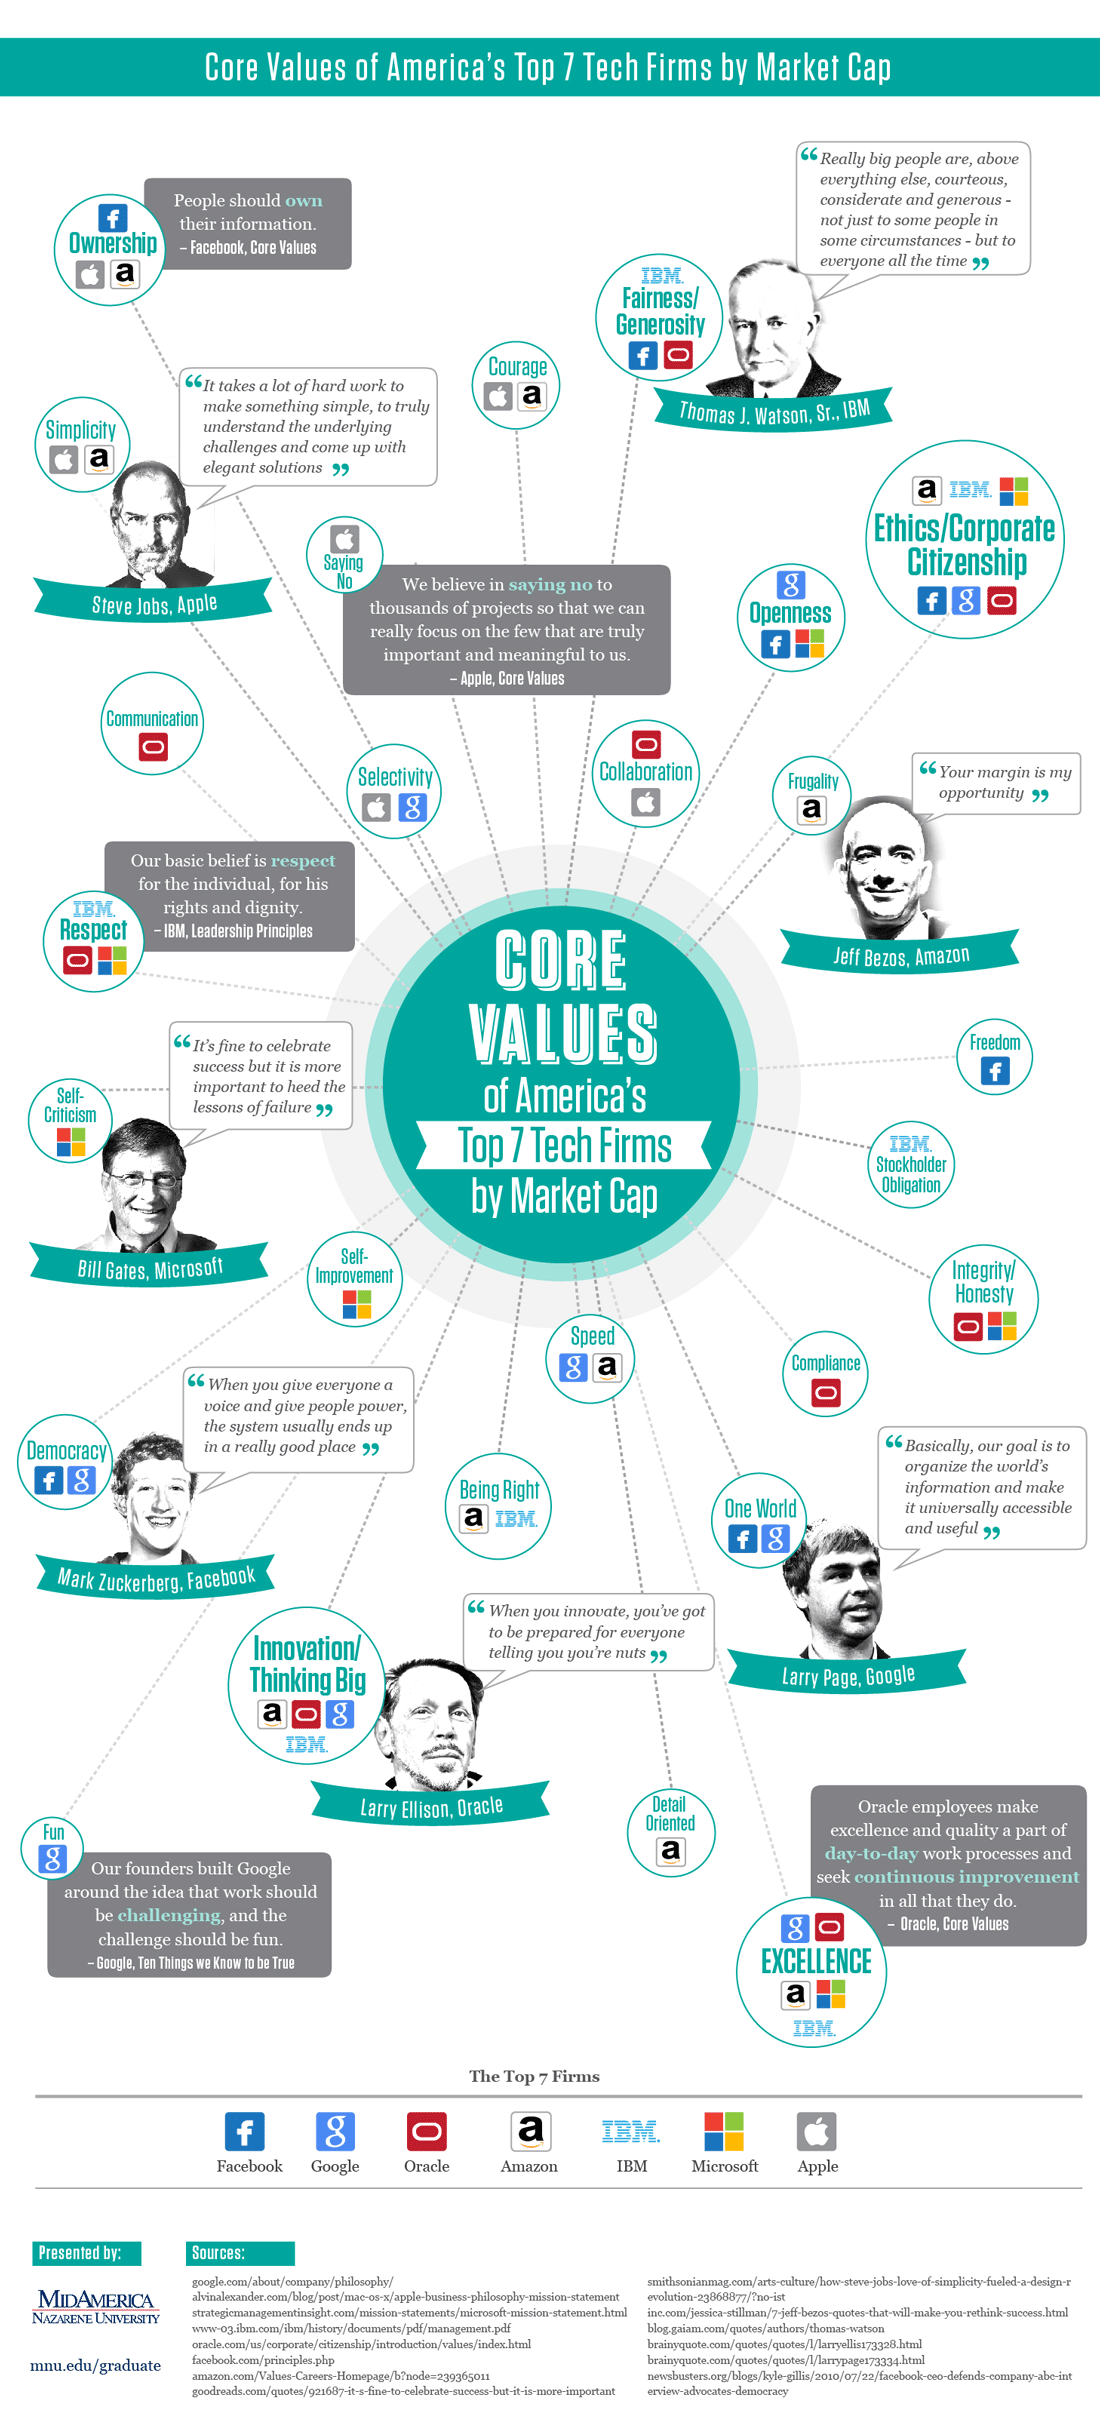 core values of top tech firms  u2013 an infographic  u2013 the